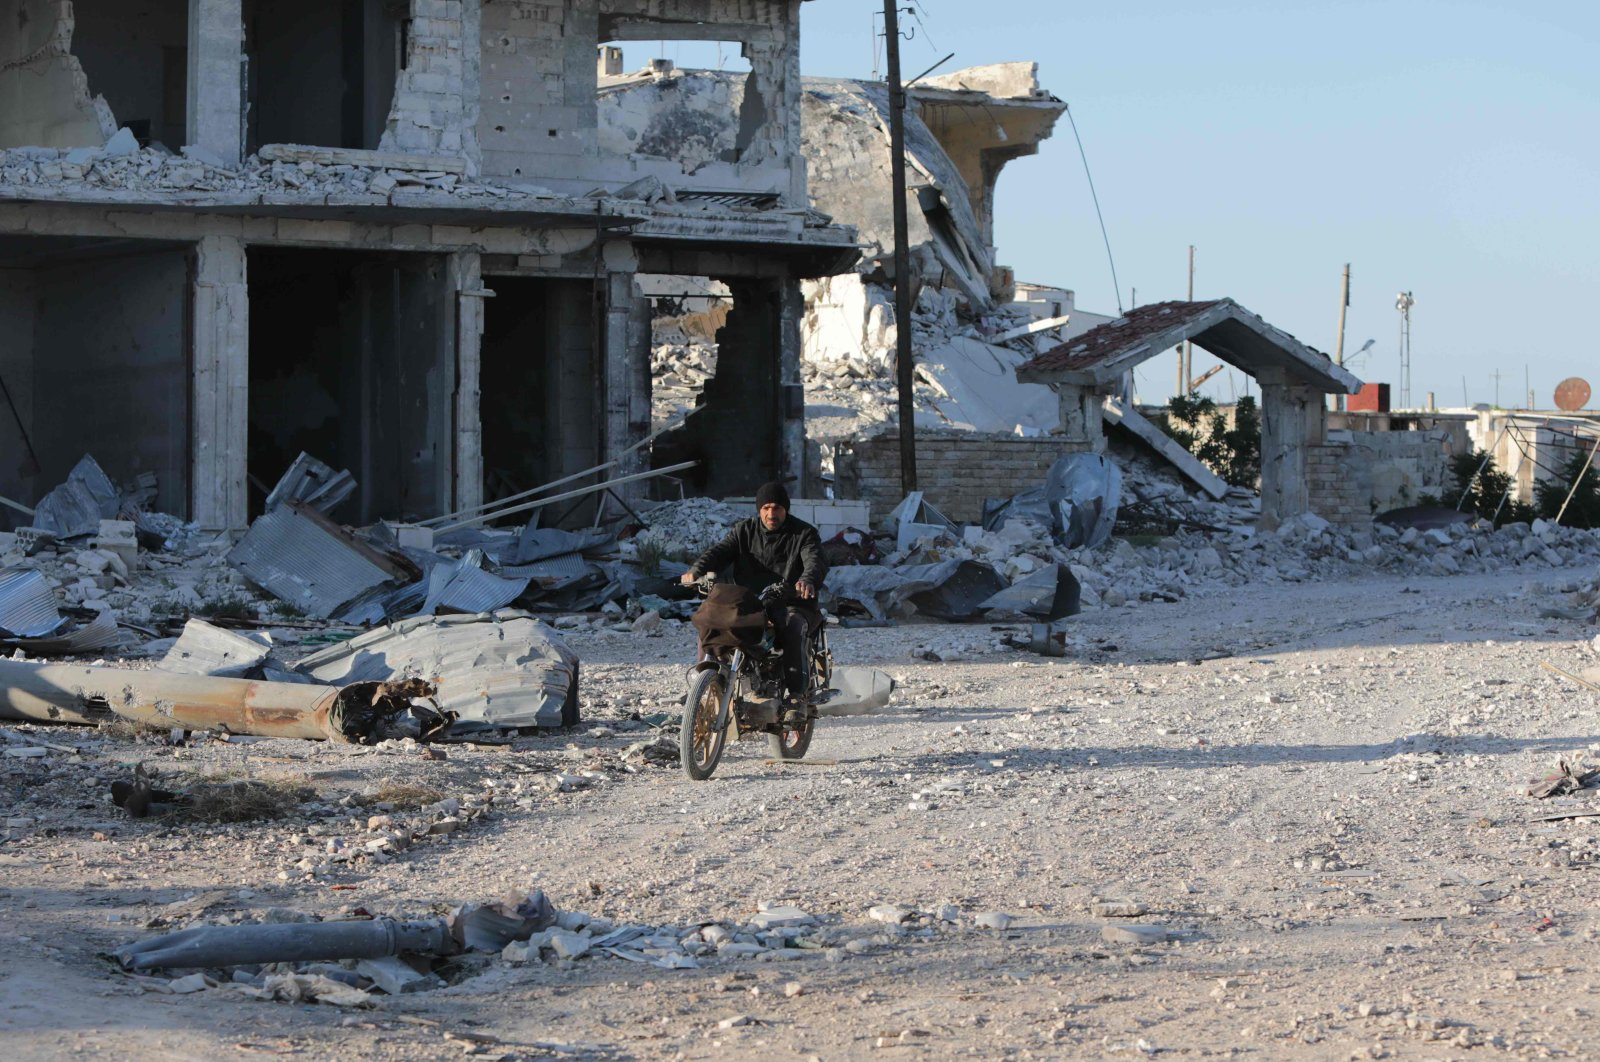 A Syrian man rides his motorcycle in al-Nayrab, a town ravaged by pro-regime forces' bombardment near the M4 strategic highway, Idlib, northwestern Syria, May 6, 2020.